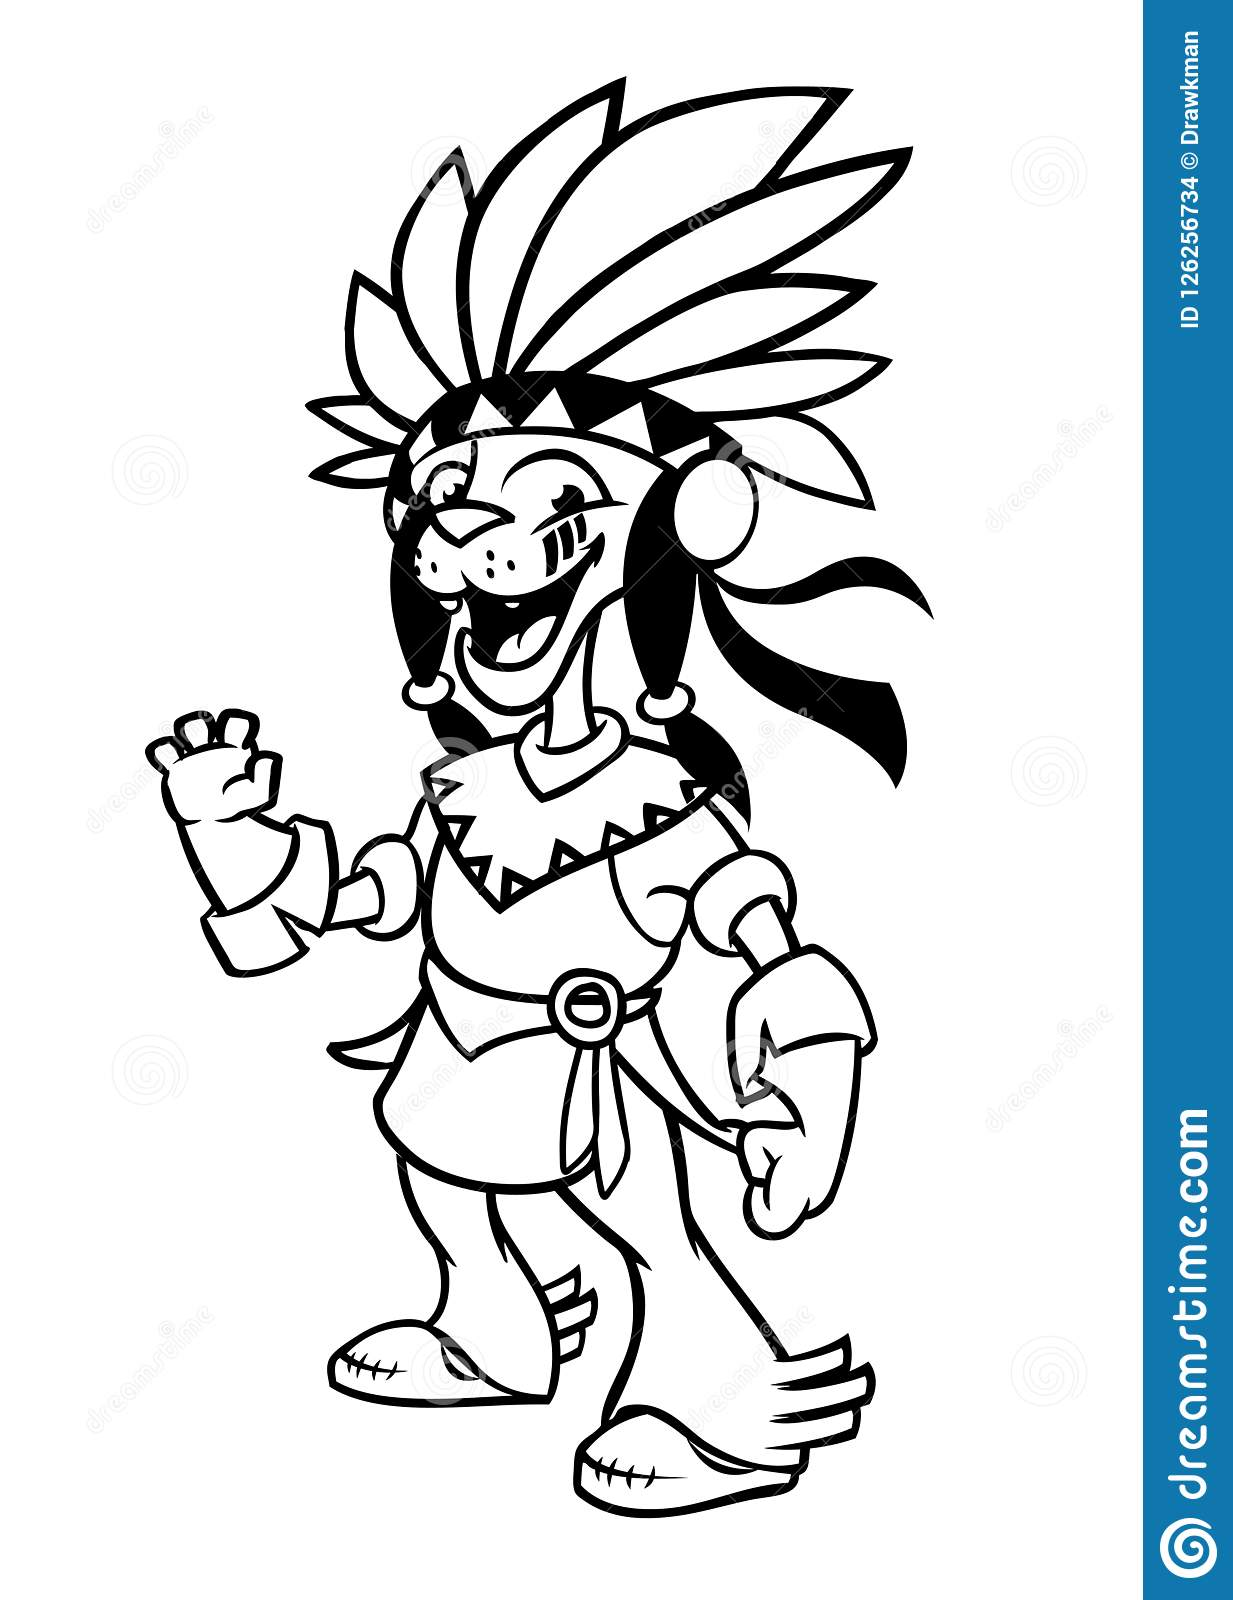 thumbs.dreamstime.com/z/cartoon-native-american-in...